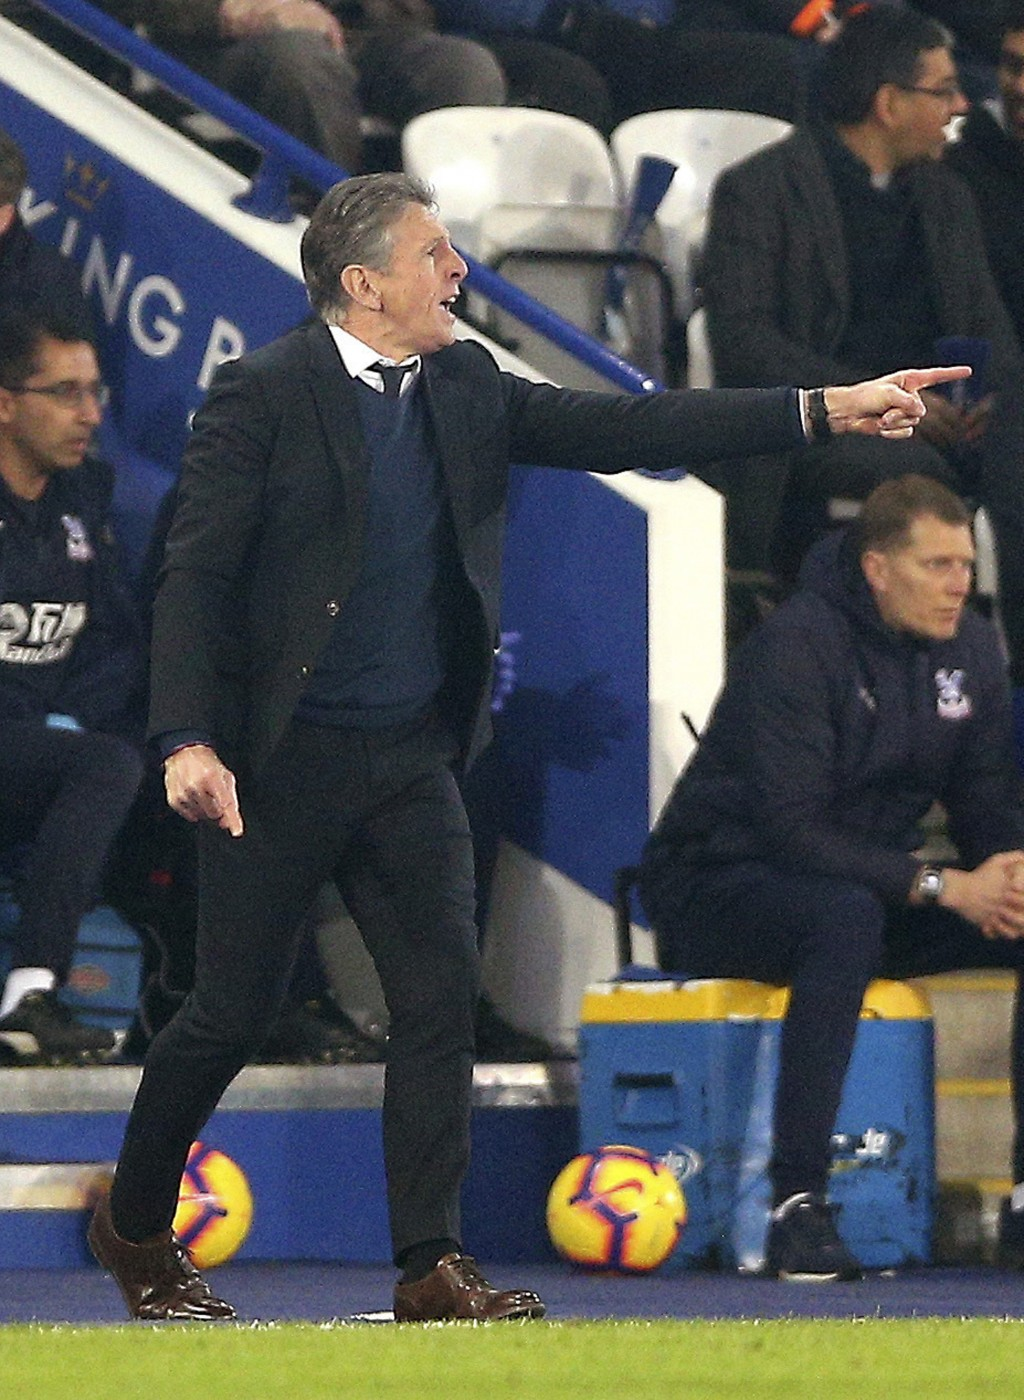 Leicester City manager Claude Puel gestures on the touchline during the match against Crystal Palace during their English Premier League soccer match